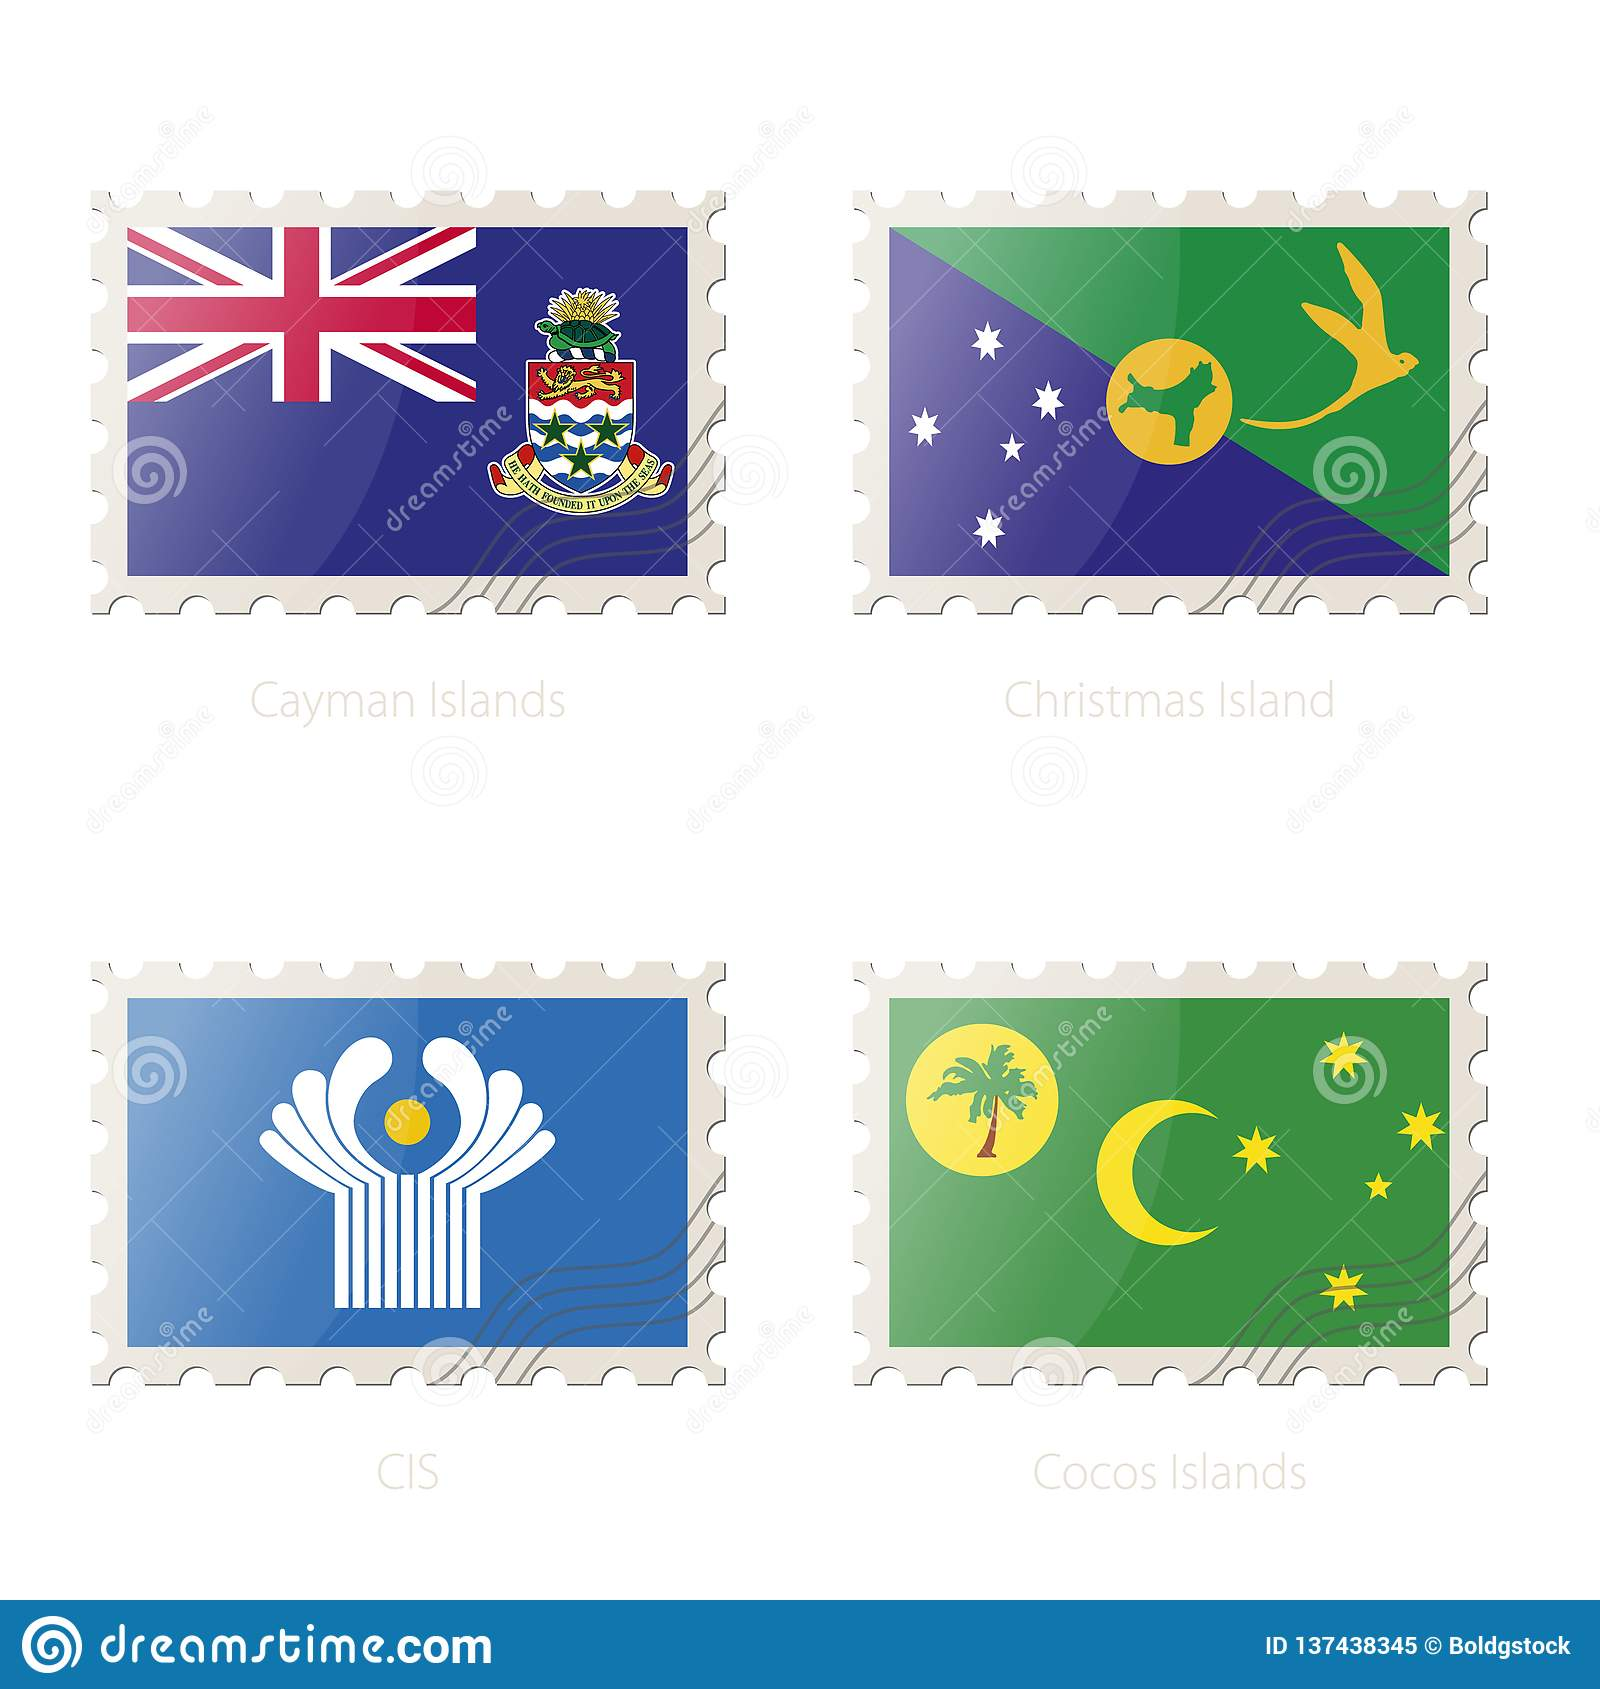 Christmas Island Flag.Postage Stamp With The Image Of Cayman Islands Christmas